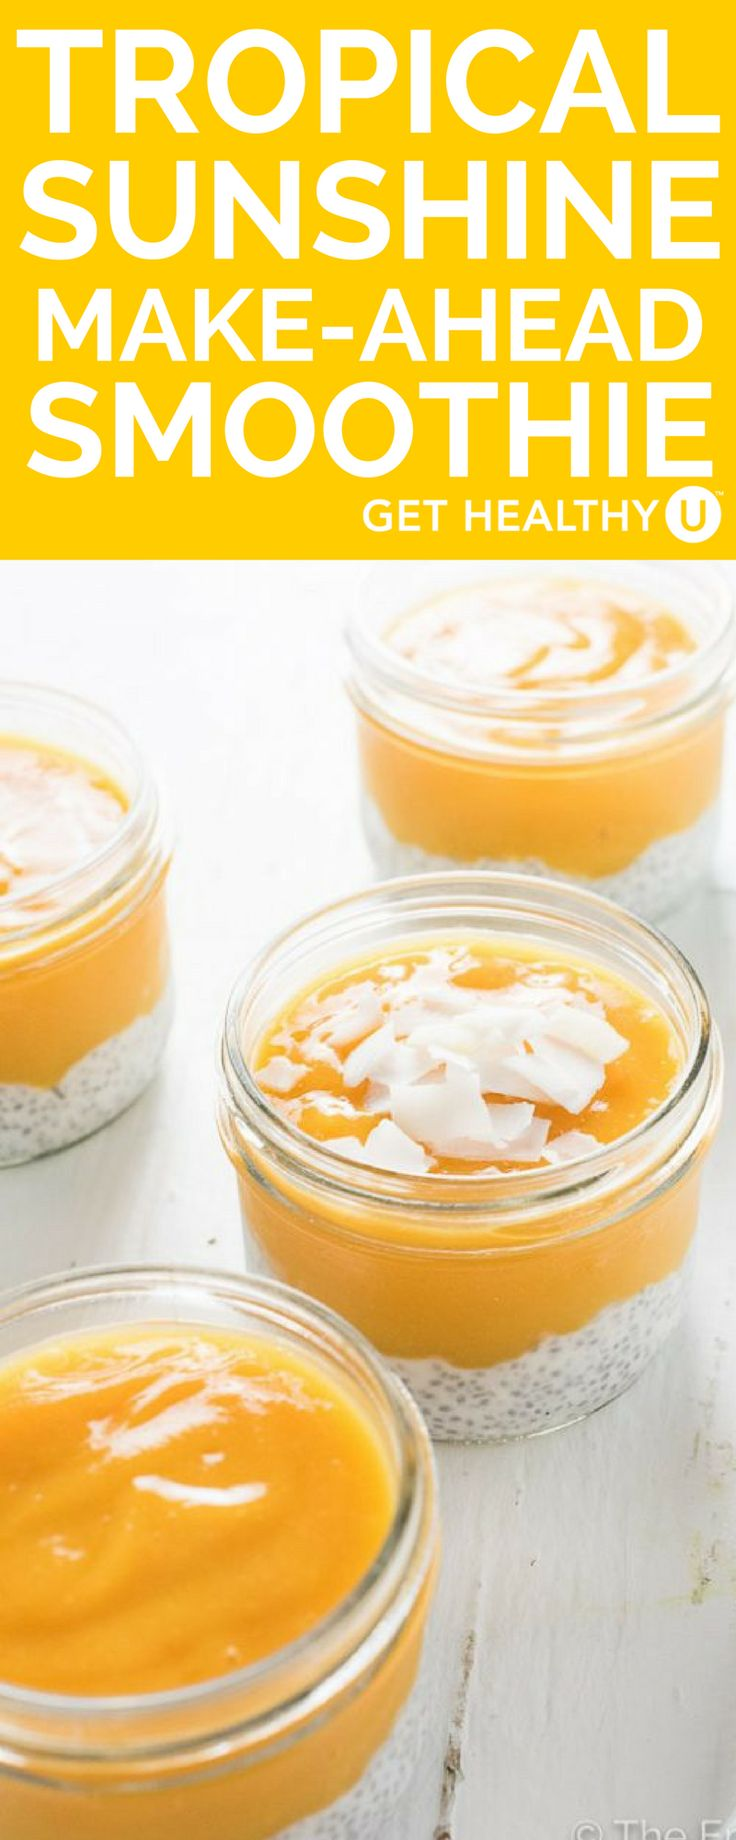 These make-ahead tropical sunshine smoothies are filled with mango, coconut, and taste amazing! We love this delicious recipe because you can make these sweet tropical drinks ahead of time and they last up to 4 days in the fridge. The bottom layer of chia seeds and coconut milk in the smoothie creates a tapioca like pudding that is super yummy and makes the perfect grab and go breakfast,  or post-workout snack.